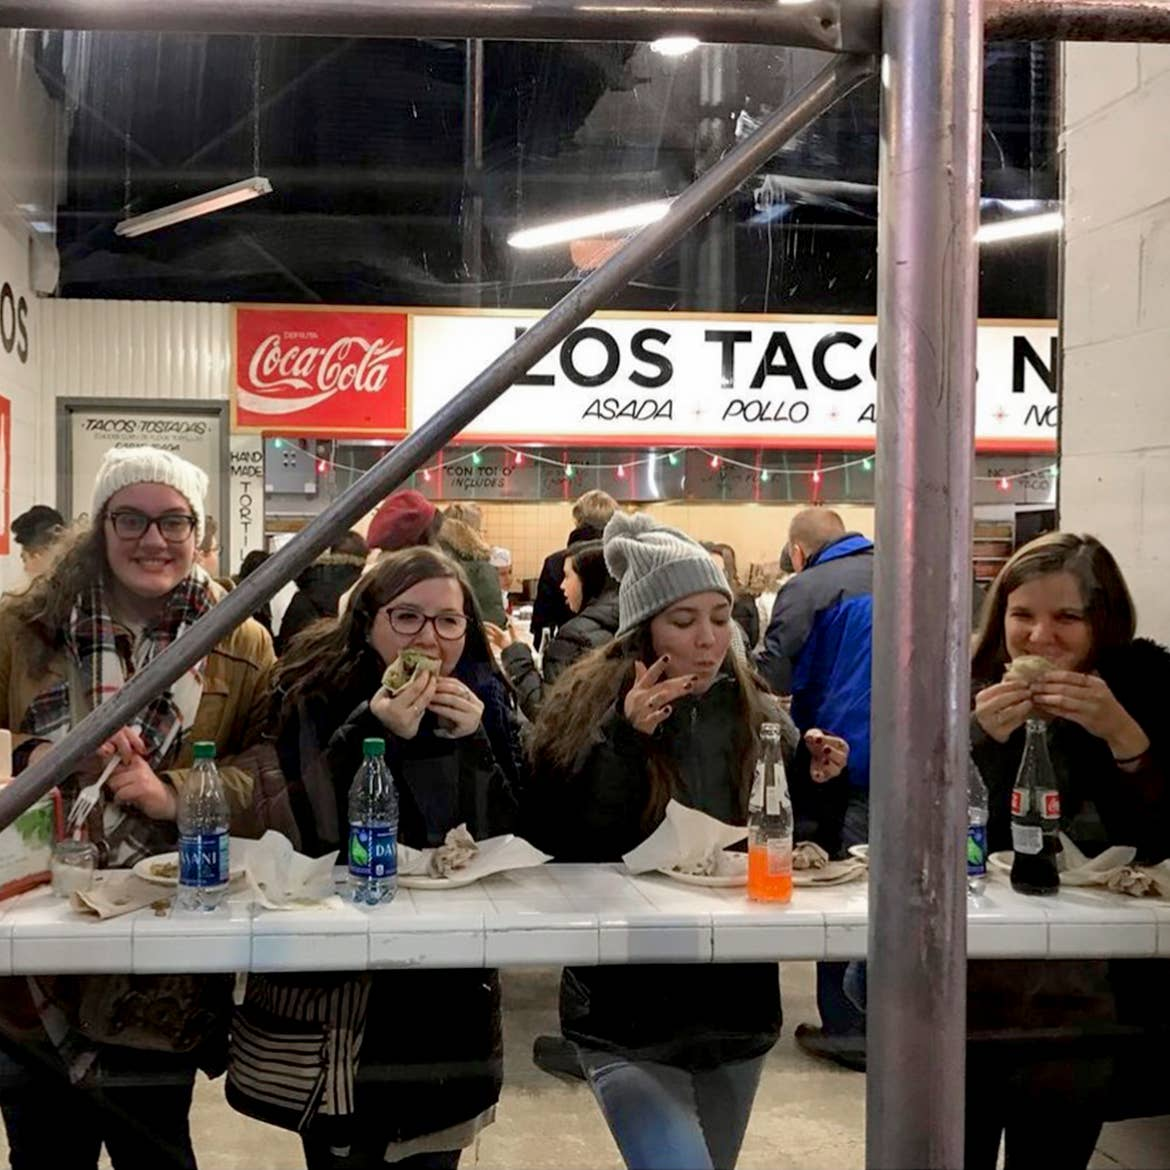 Four caucasian women wearing winter apparel are seated at a countertop at 'Los Tacos' in New York City.